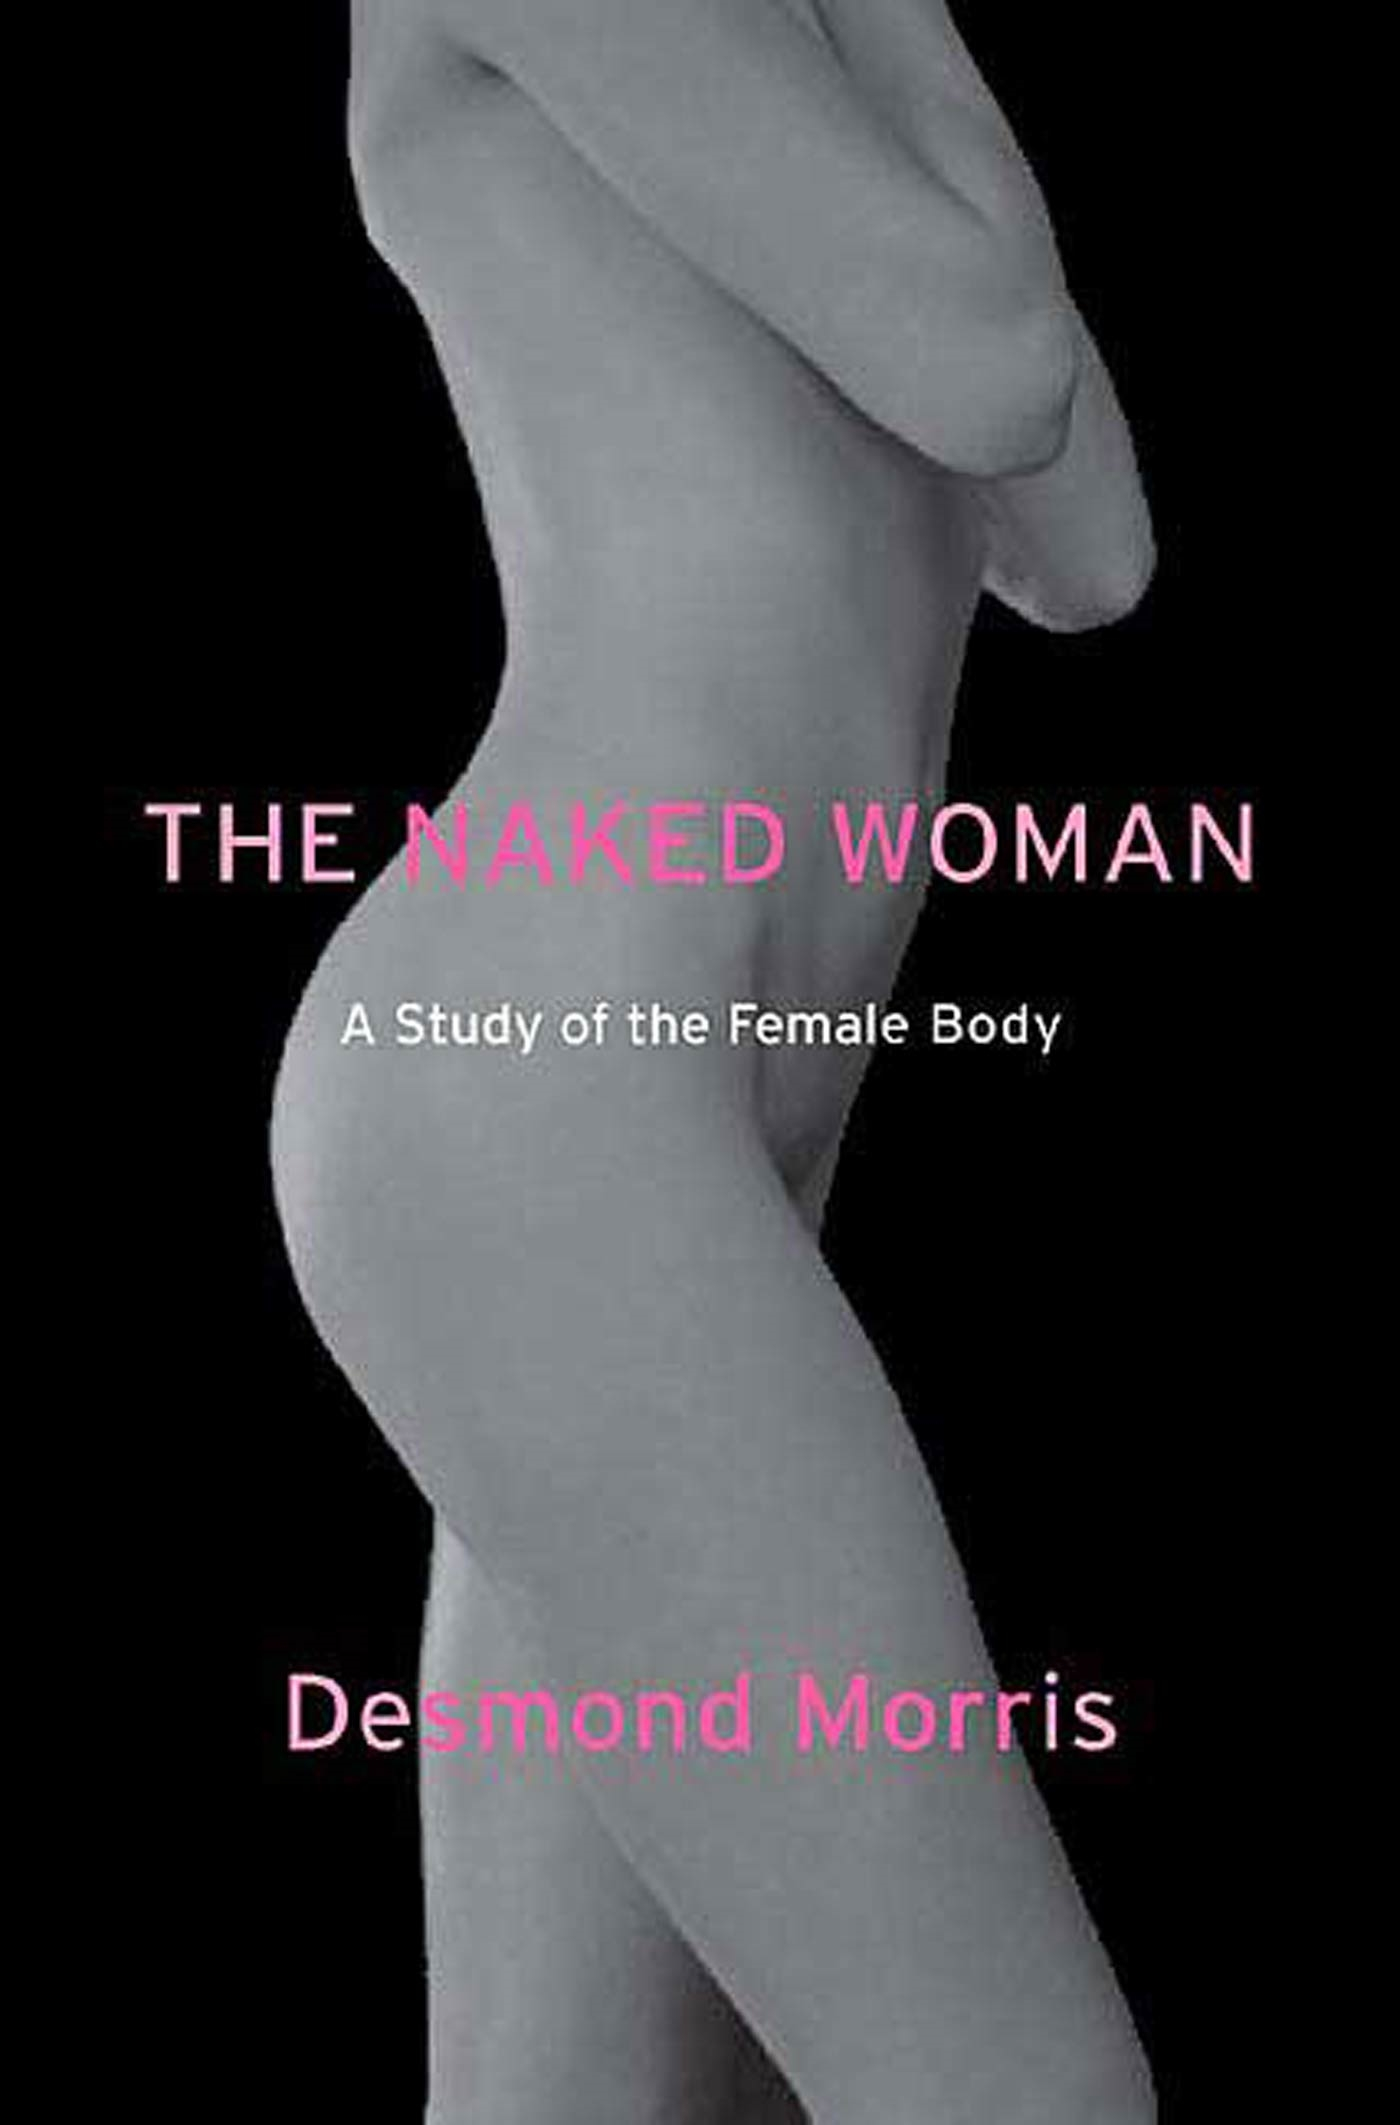 Lie. body female naked study woman agree